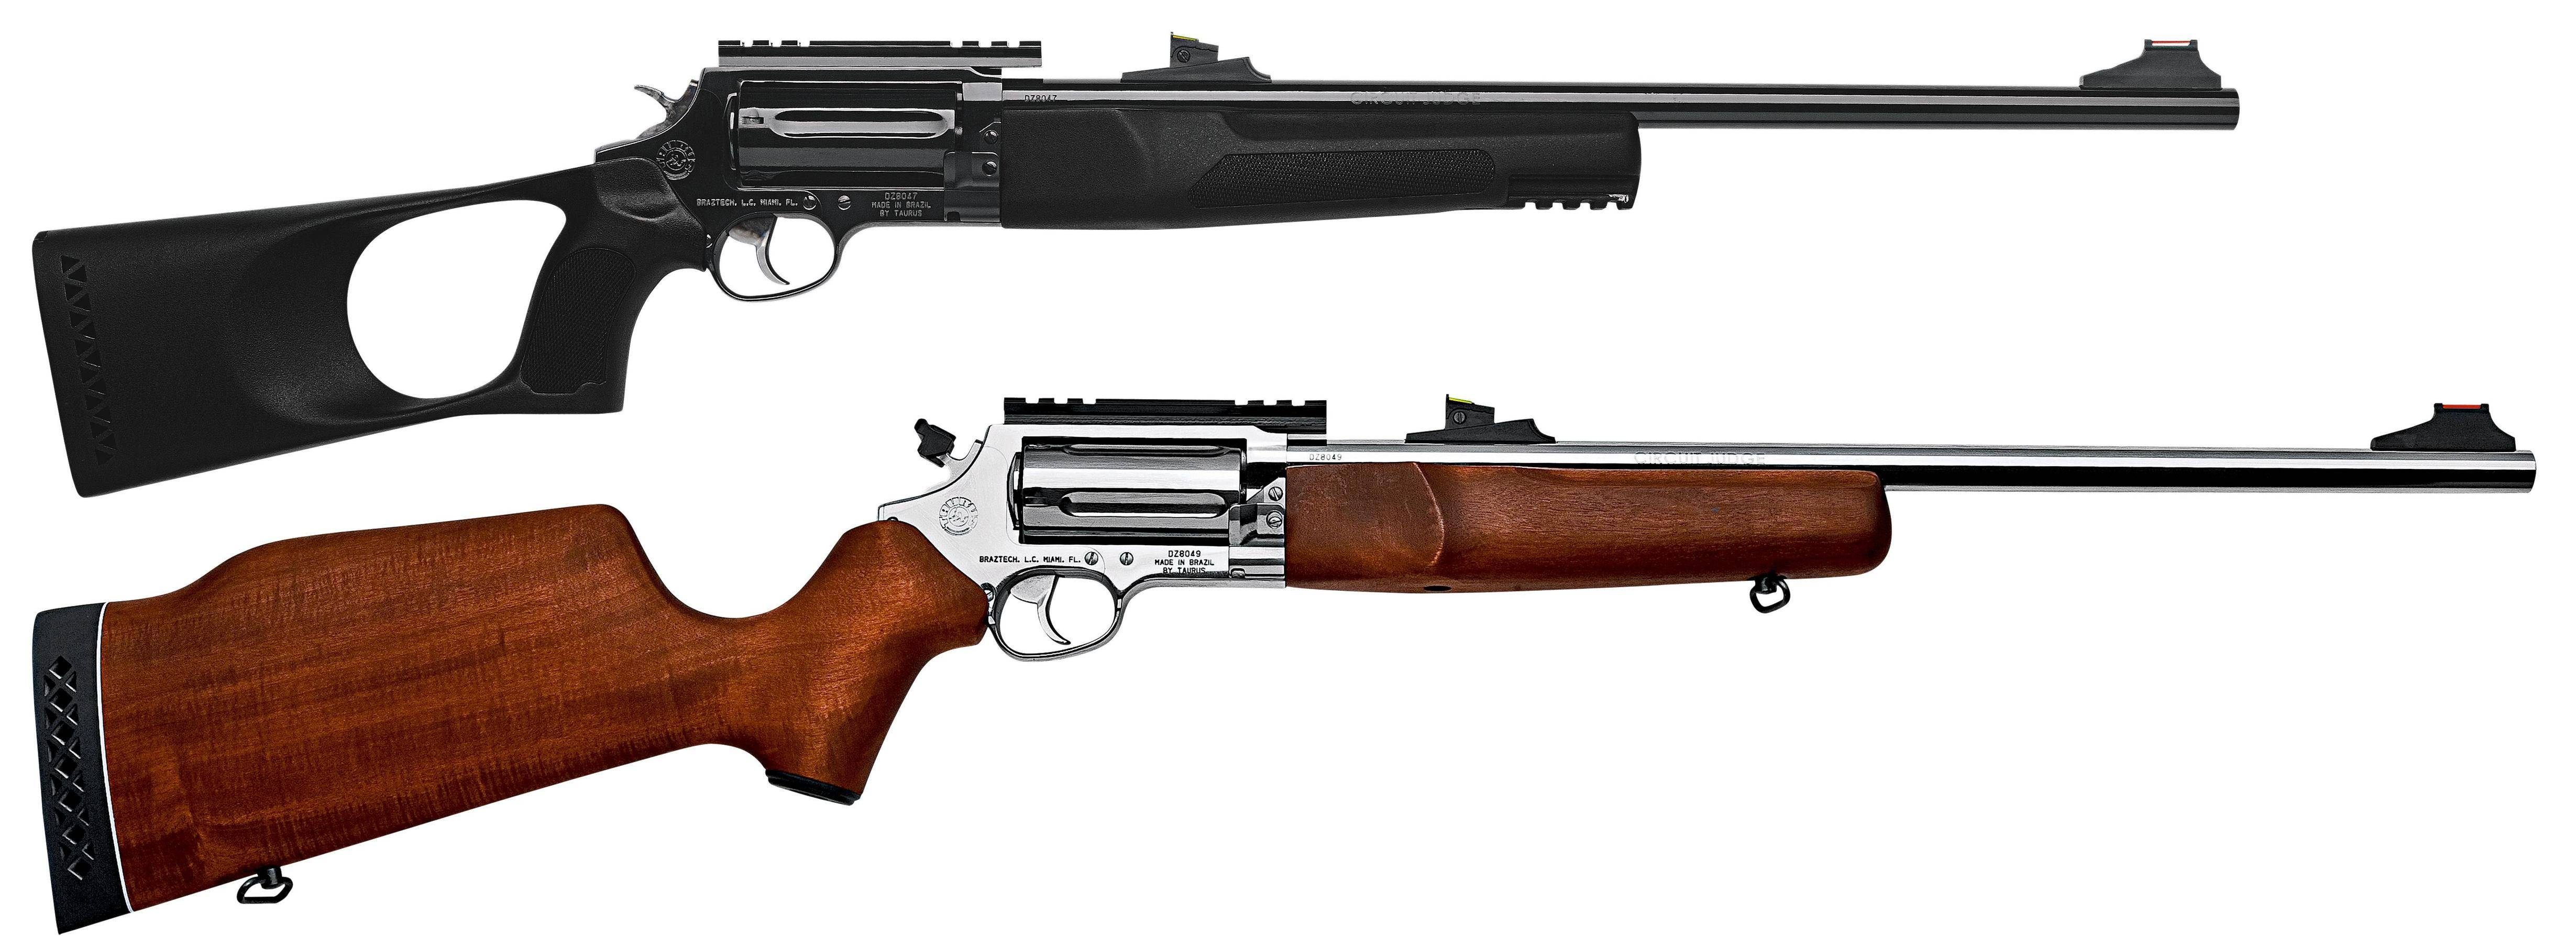 Props What Type Of Gun Is Primarily Used By The